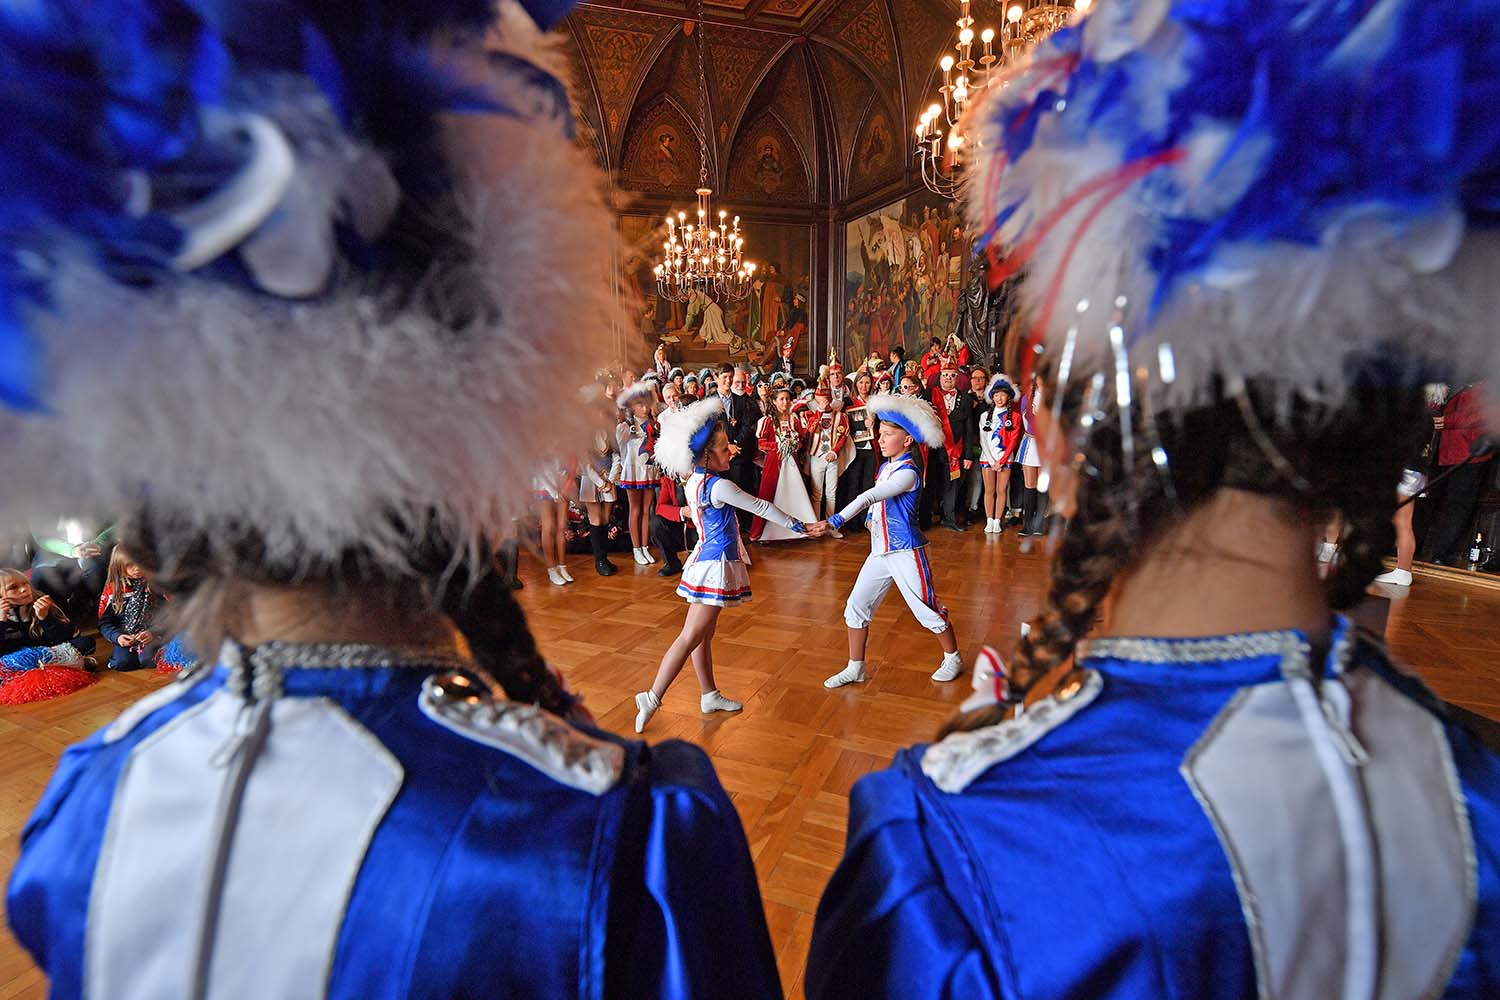 Young members of a dance group perform during an event to celebrate the start of the carnival season at the city hall in Erfurt, eastern Germany, on Nov. 11. MARTIN SCHUTT/DPA/AFP via Getty Images